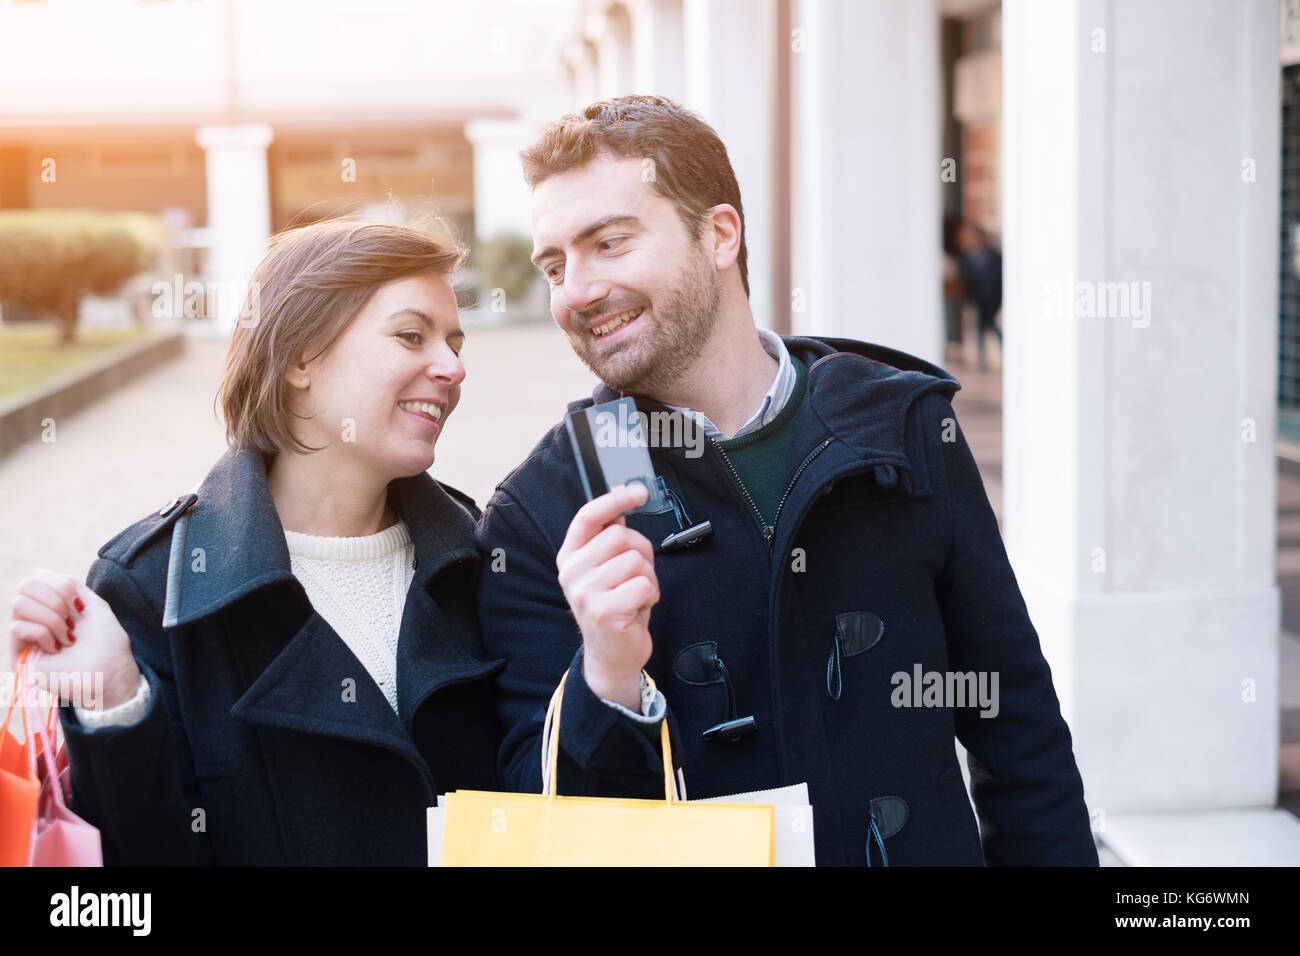 Man holding a credit card ready for the shopping time with his girlfriend - Stock Image